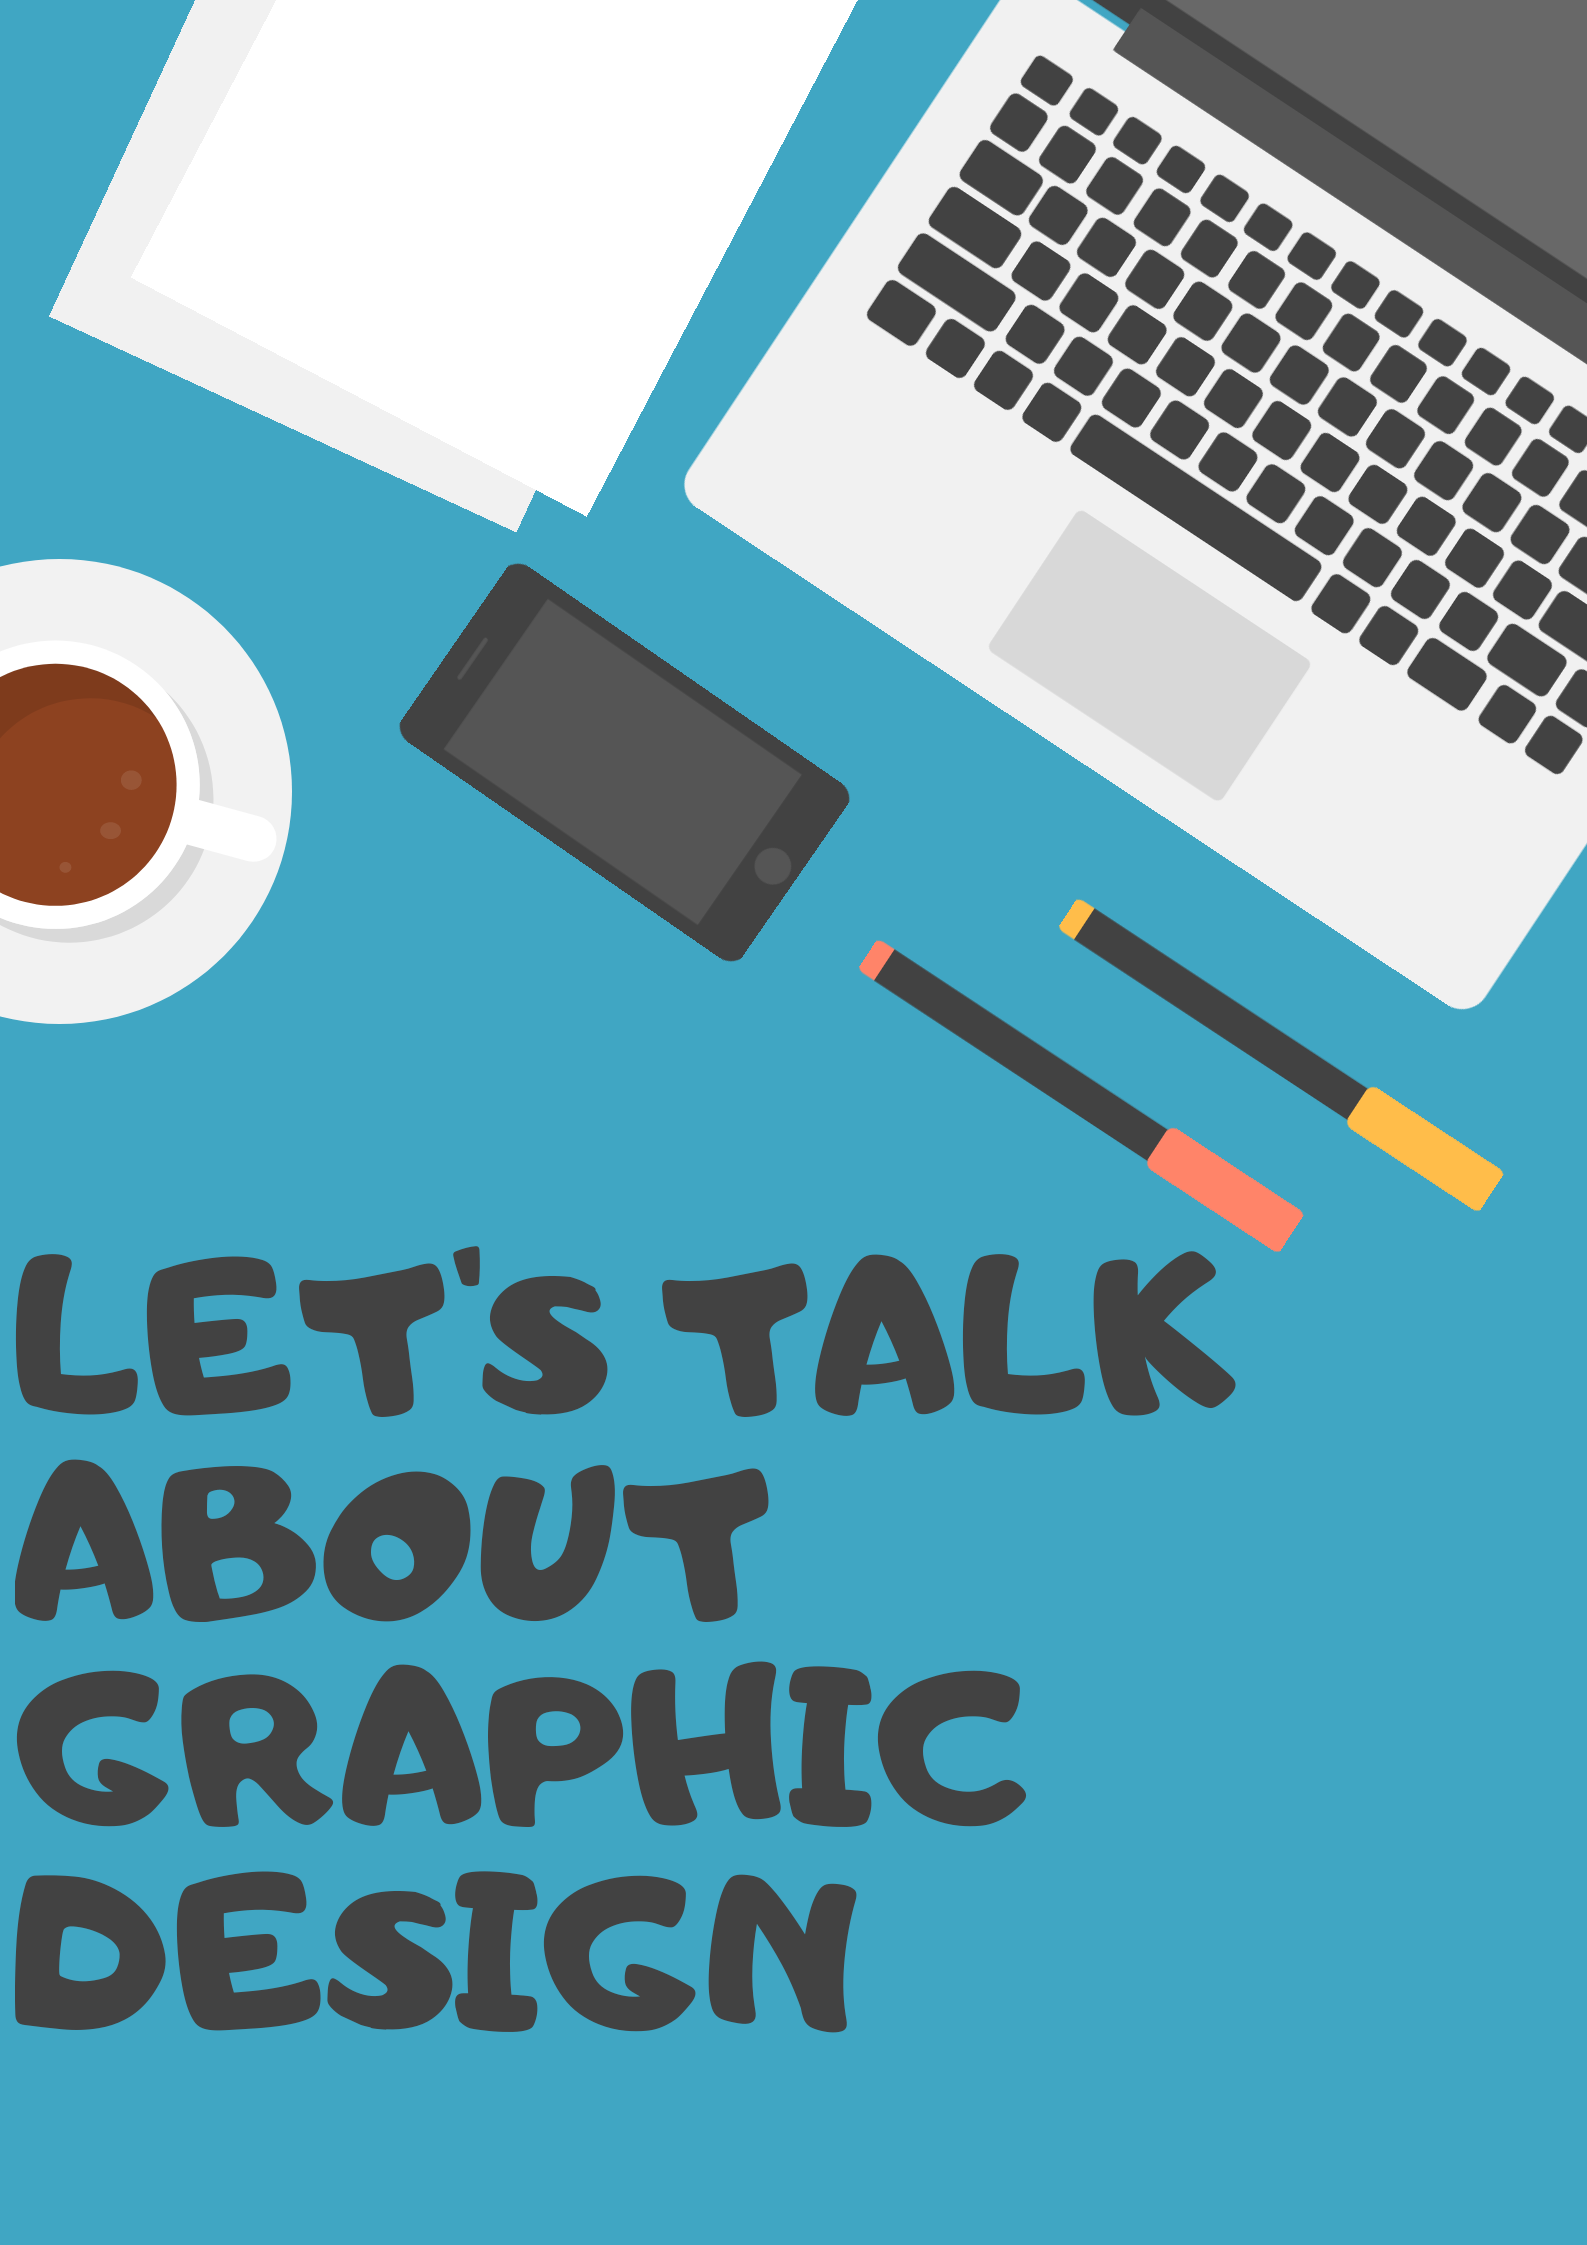 I'm a graphics designer,  I engages in all sort of designs you could think of.